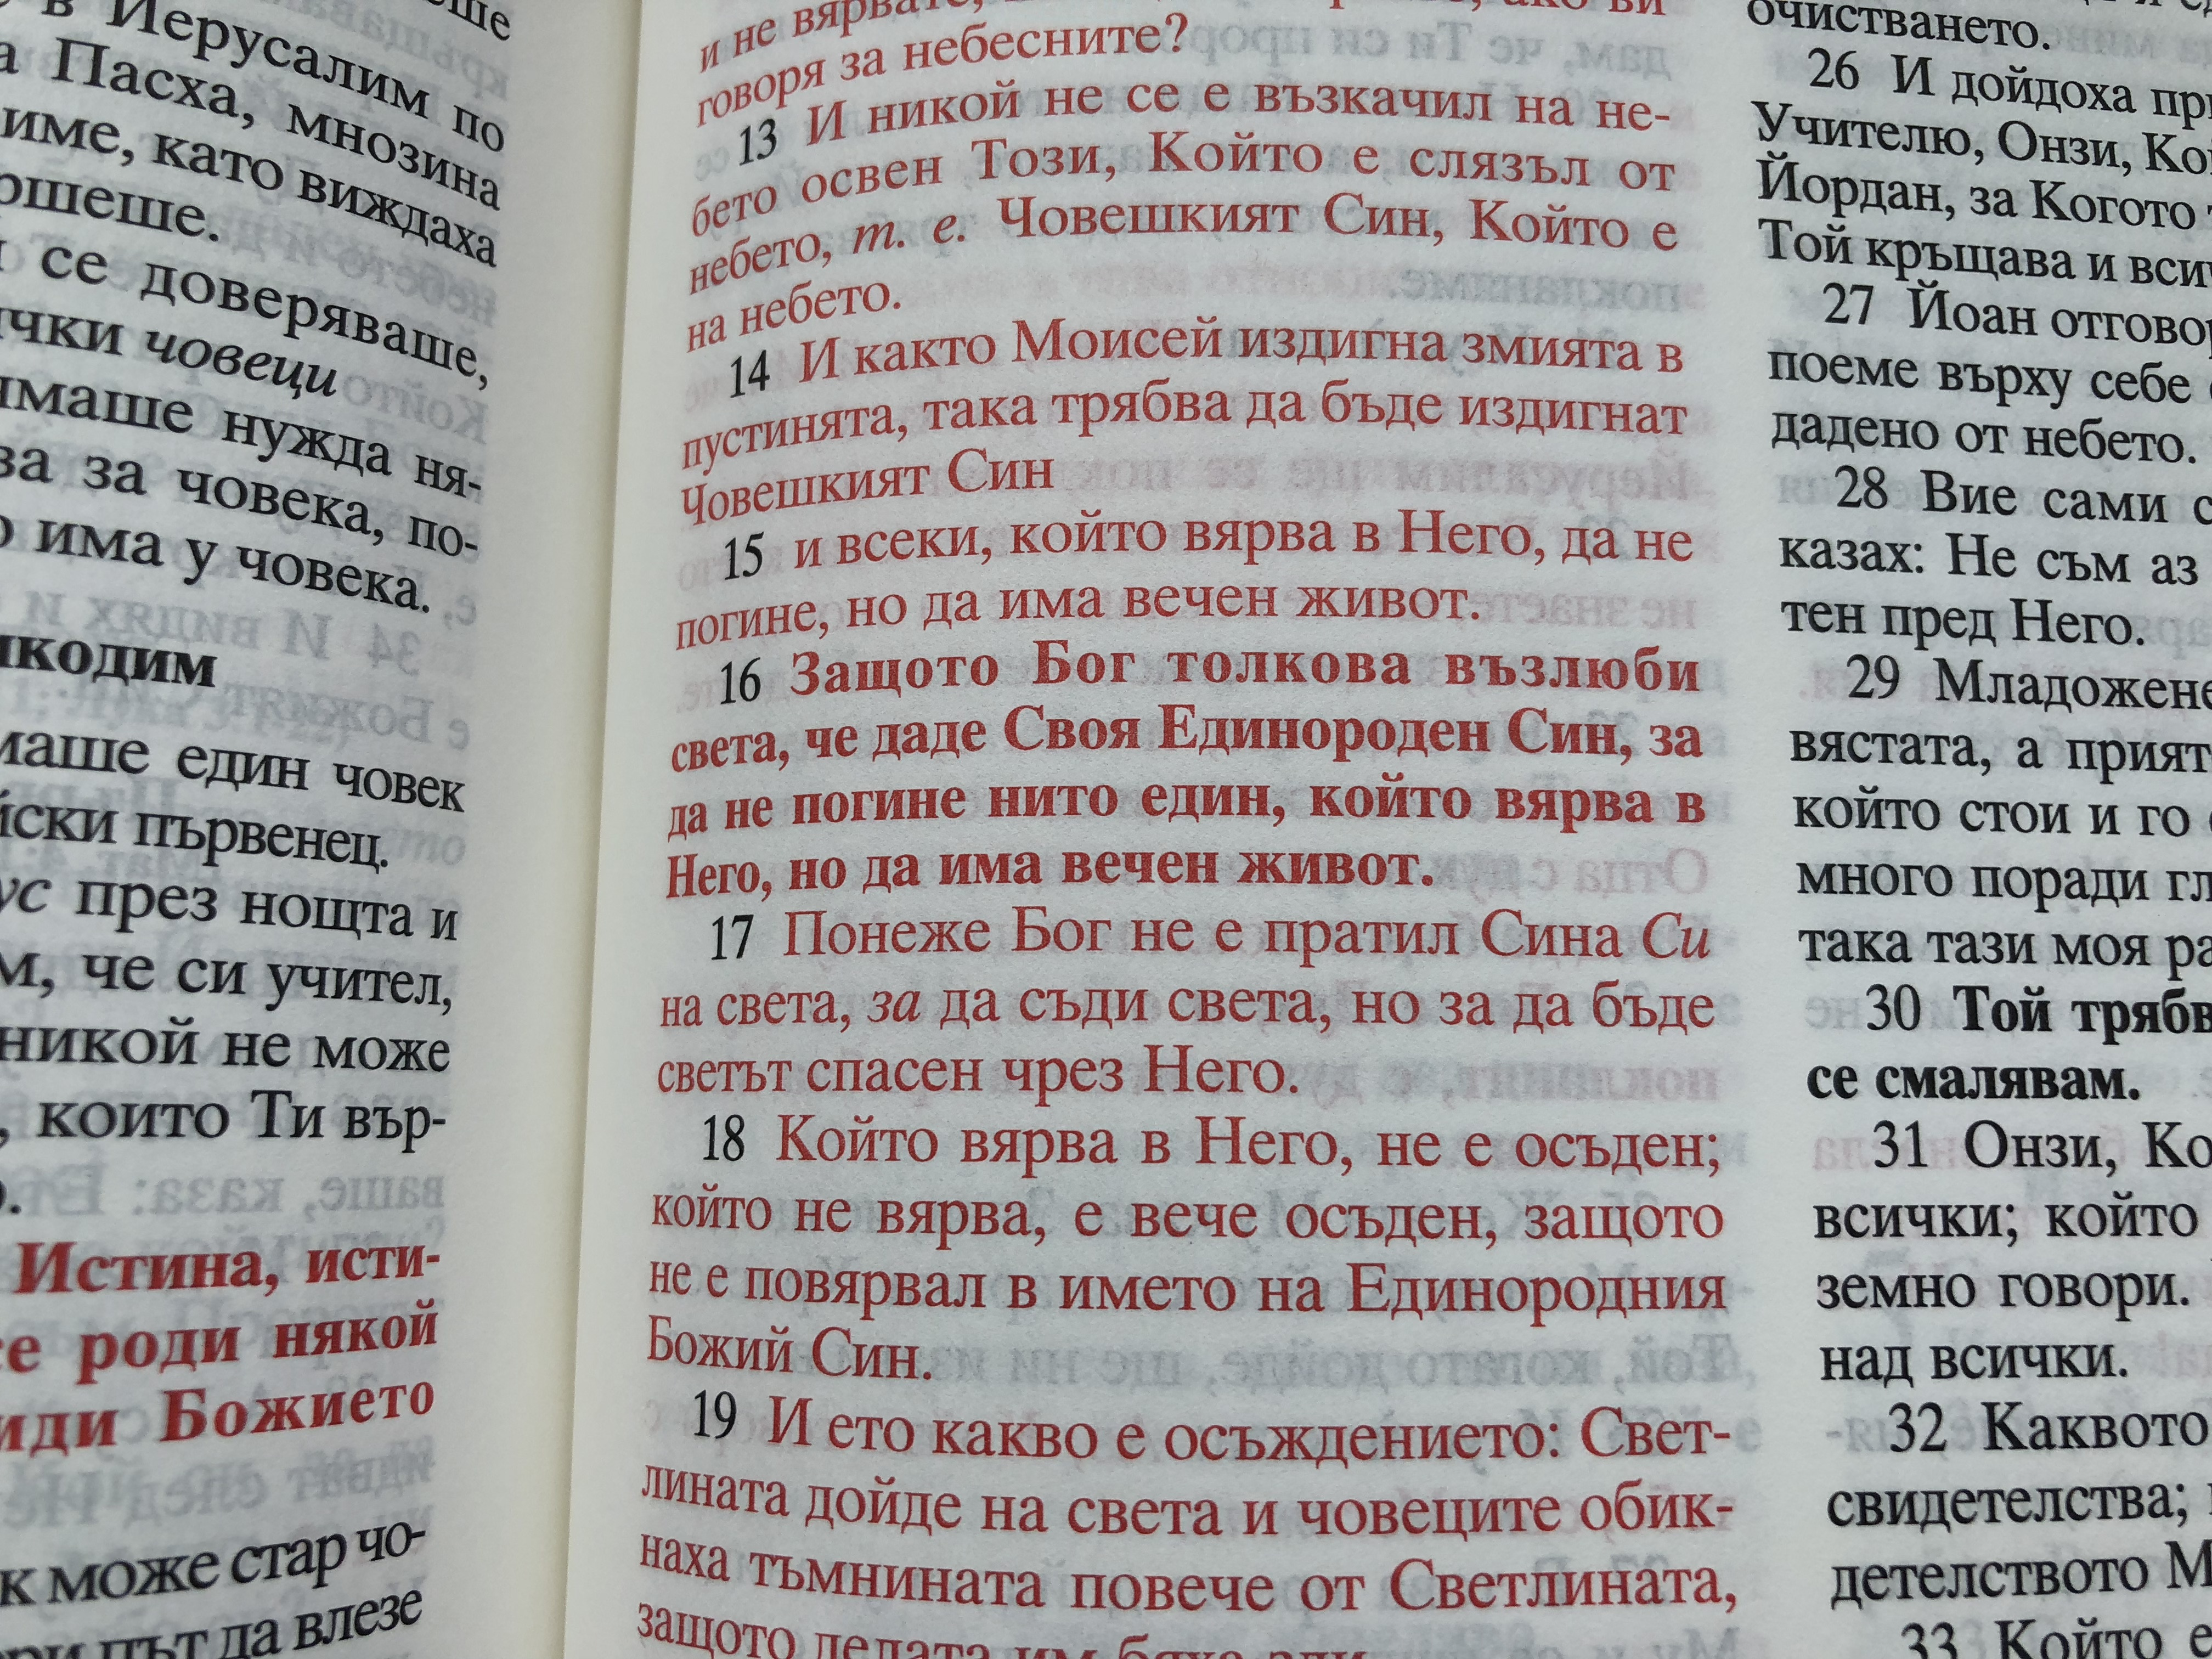 bulgarian-bible-black-hardcover-with-thumb-index-the-words-of-jesus-in-red-12-.jpg